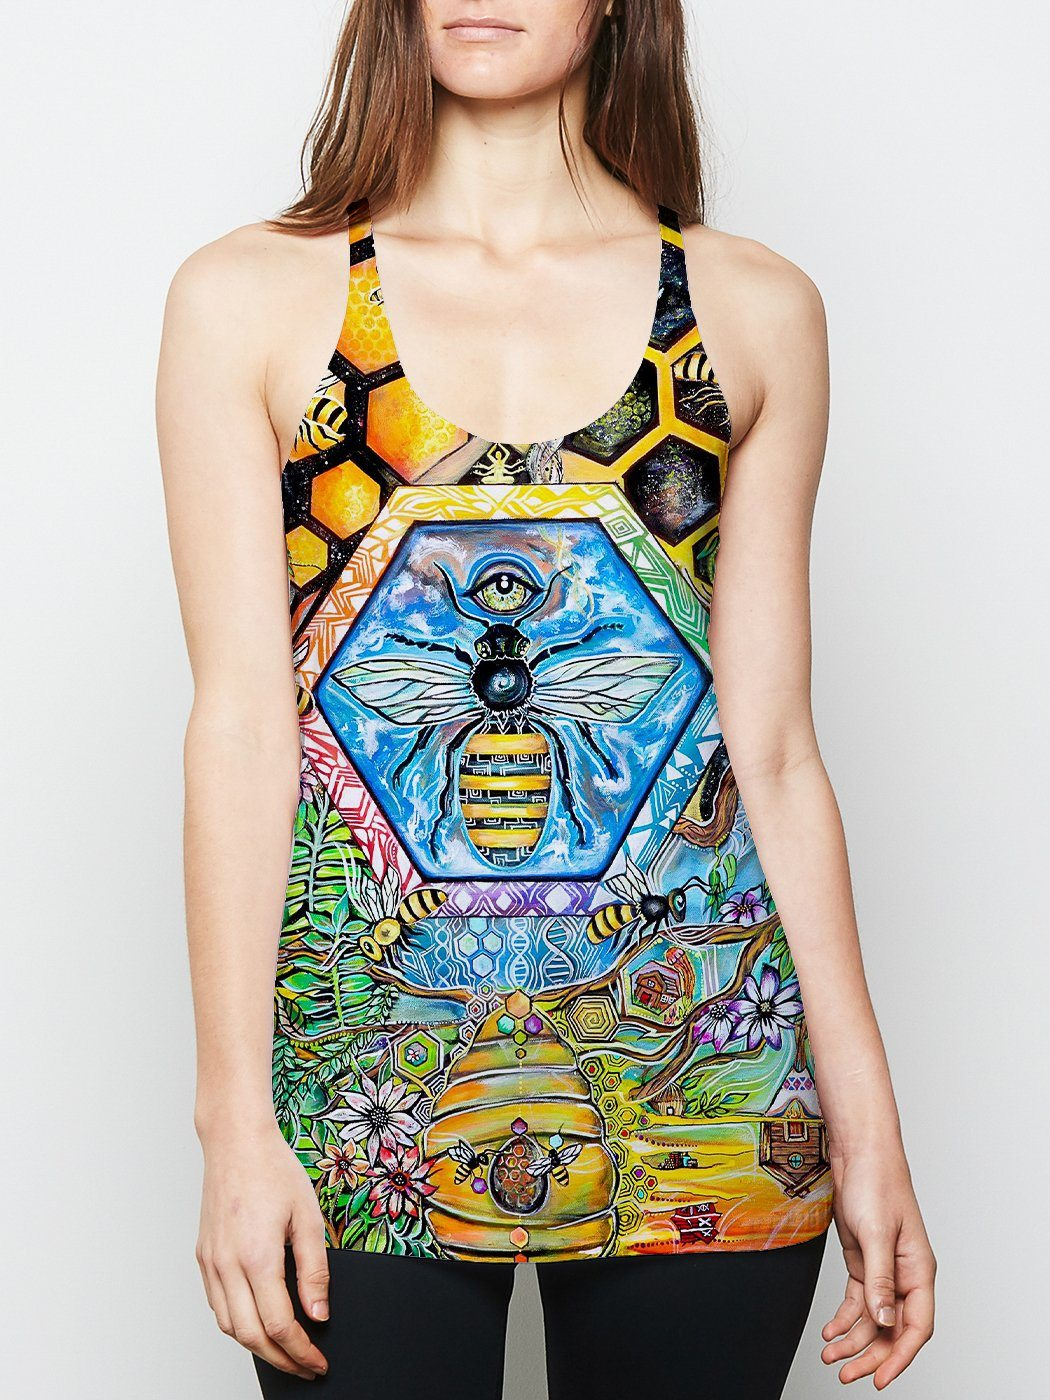 Bee Conscious Racerback Tank Top Tank Tops Electro Threads